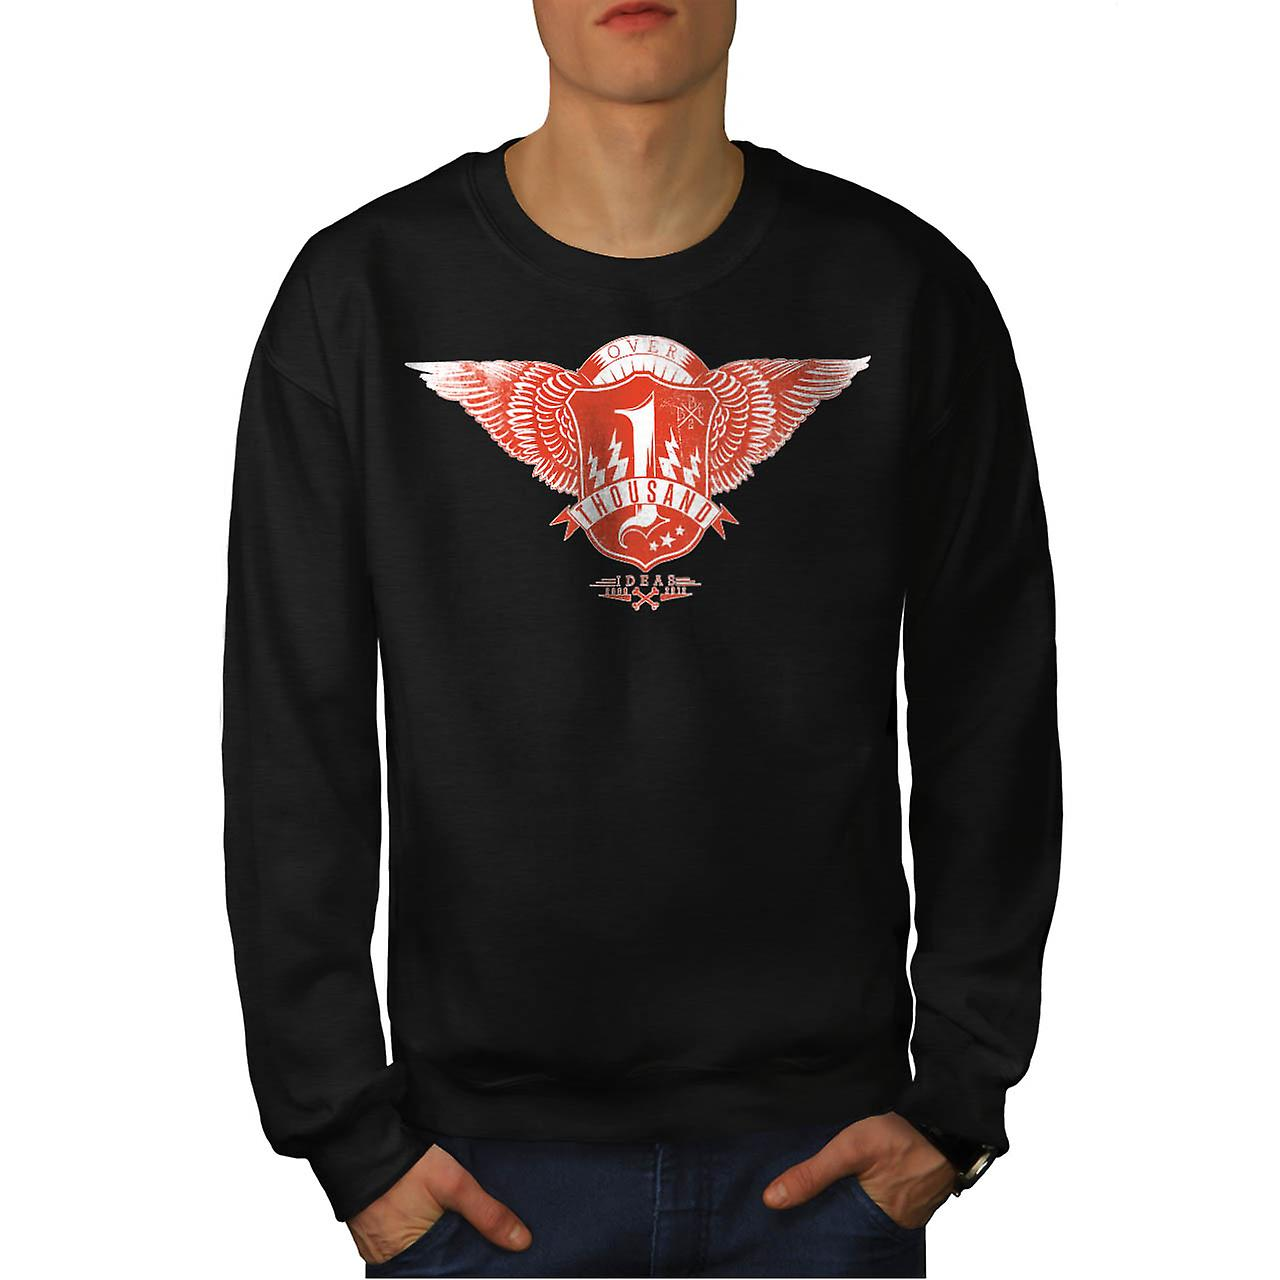 Bad Bone Crew Gang Thousand Idea Men Black Sweatshirt | Wellcoda